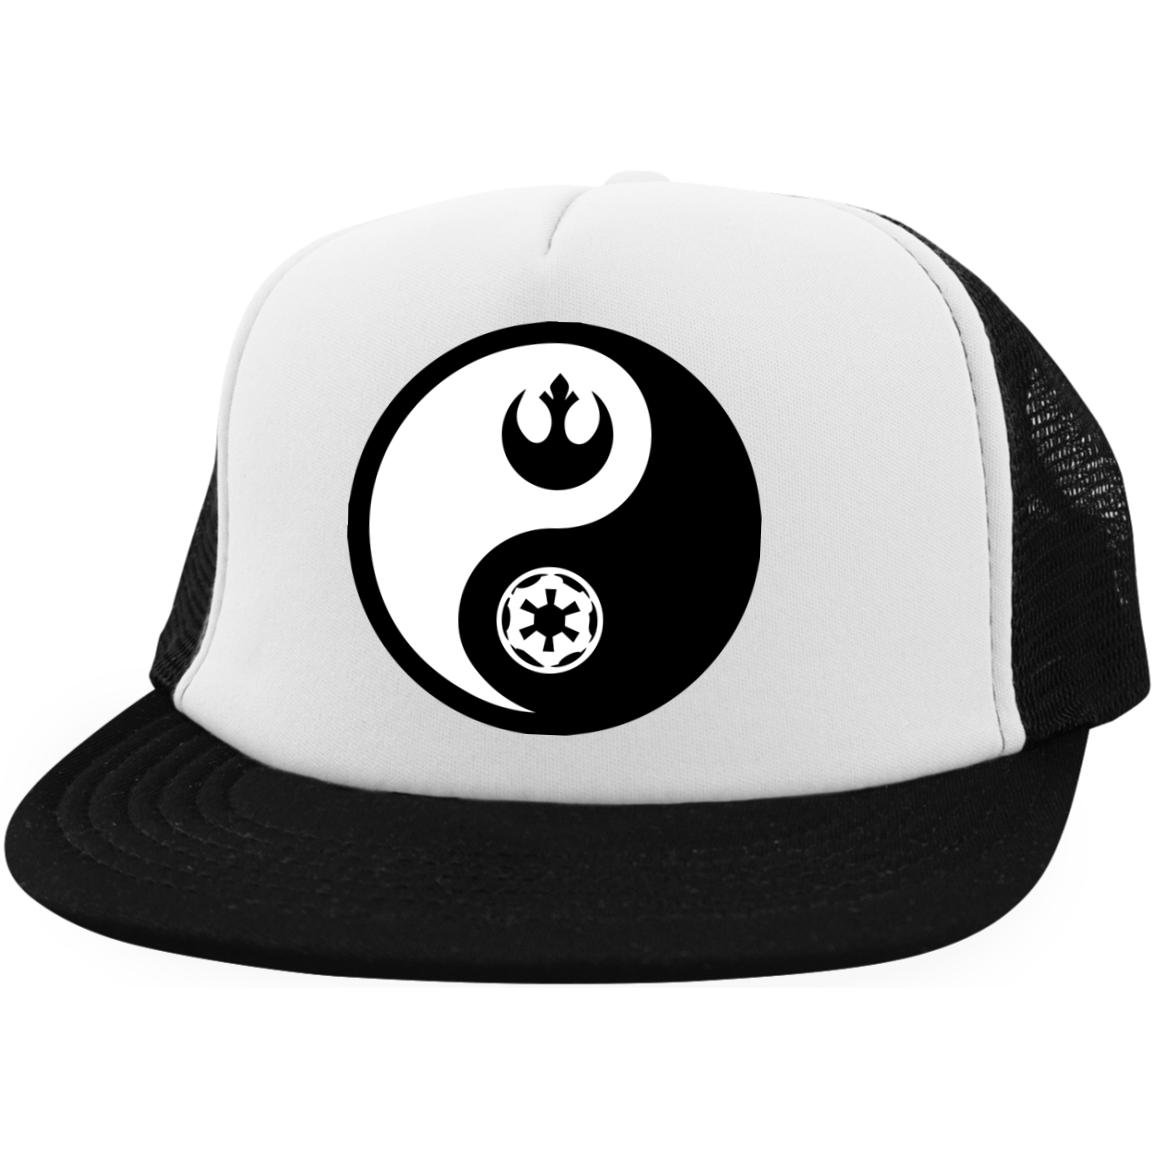 Rebel & Empire Yin Yang - Embroidered Trucker Hat